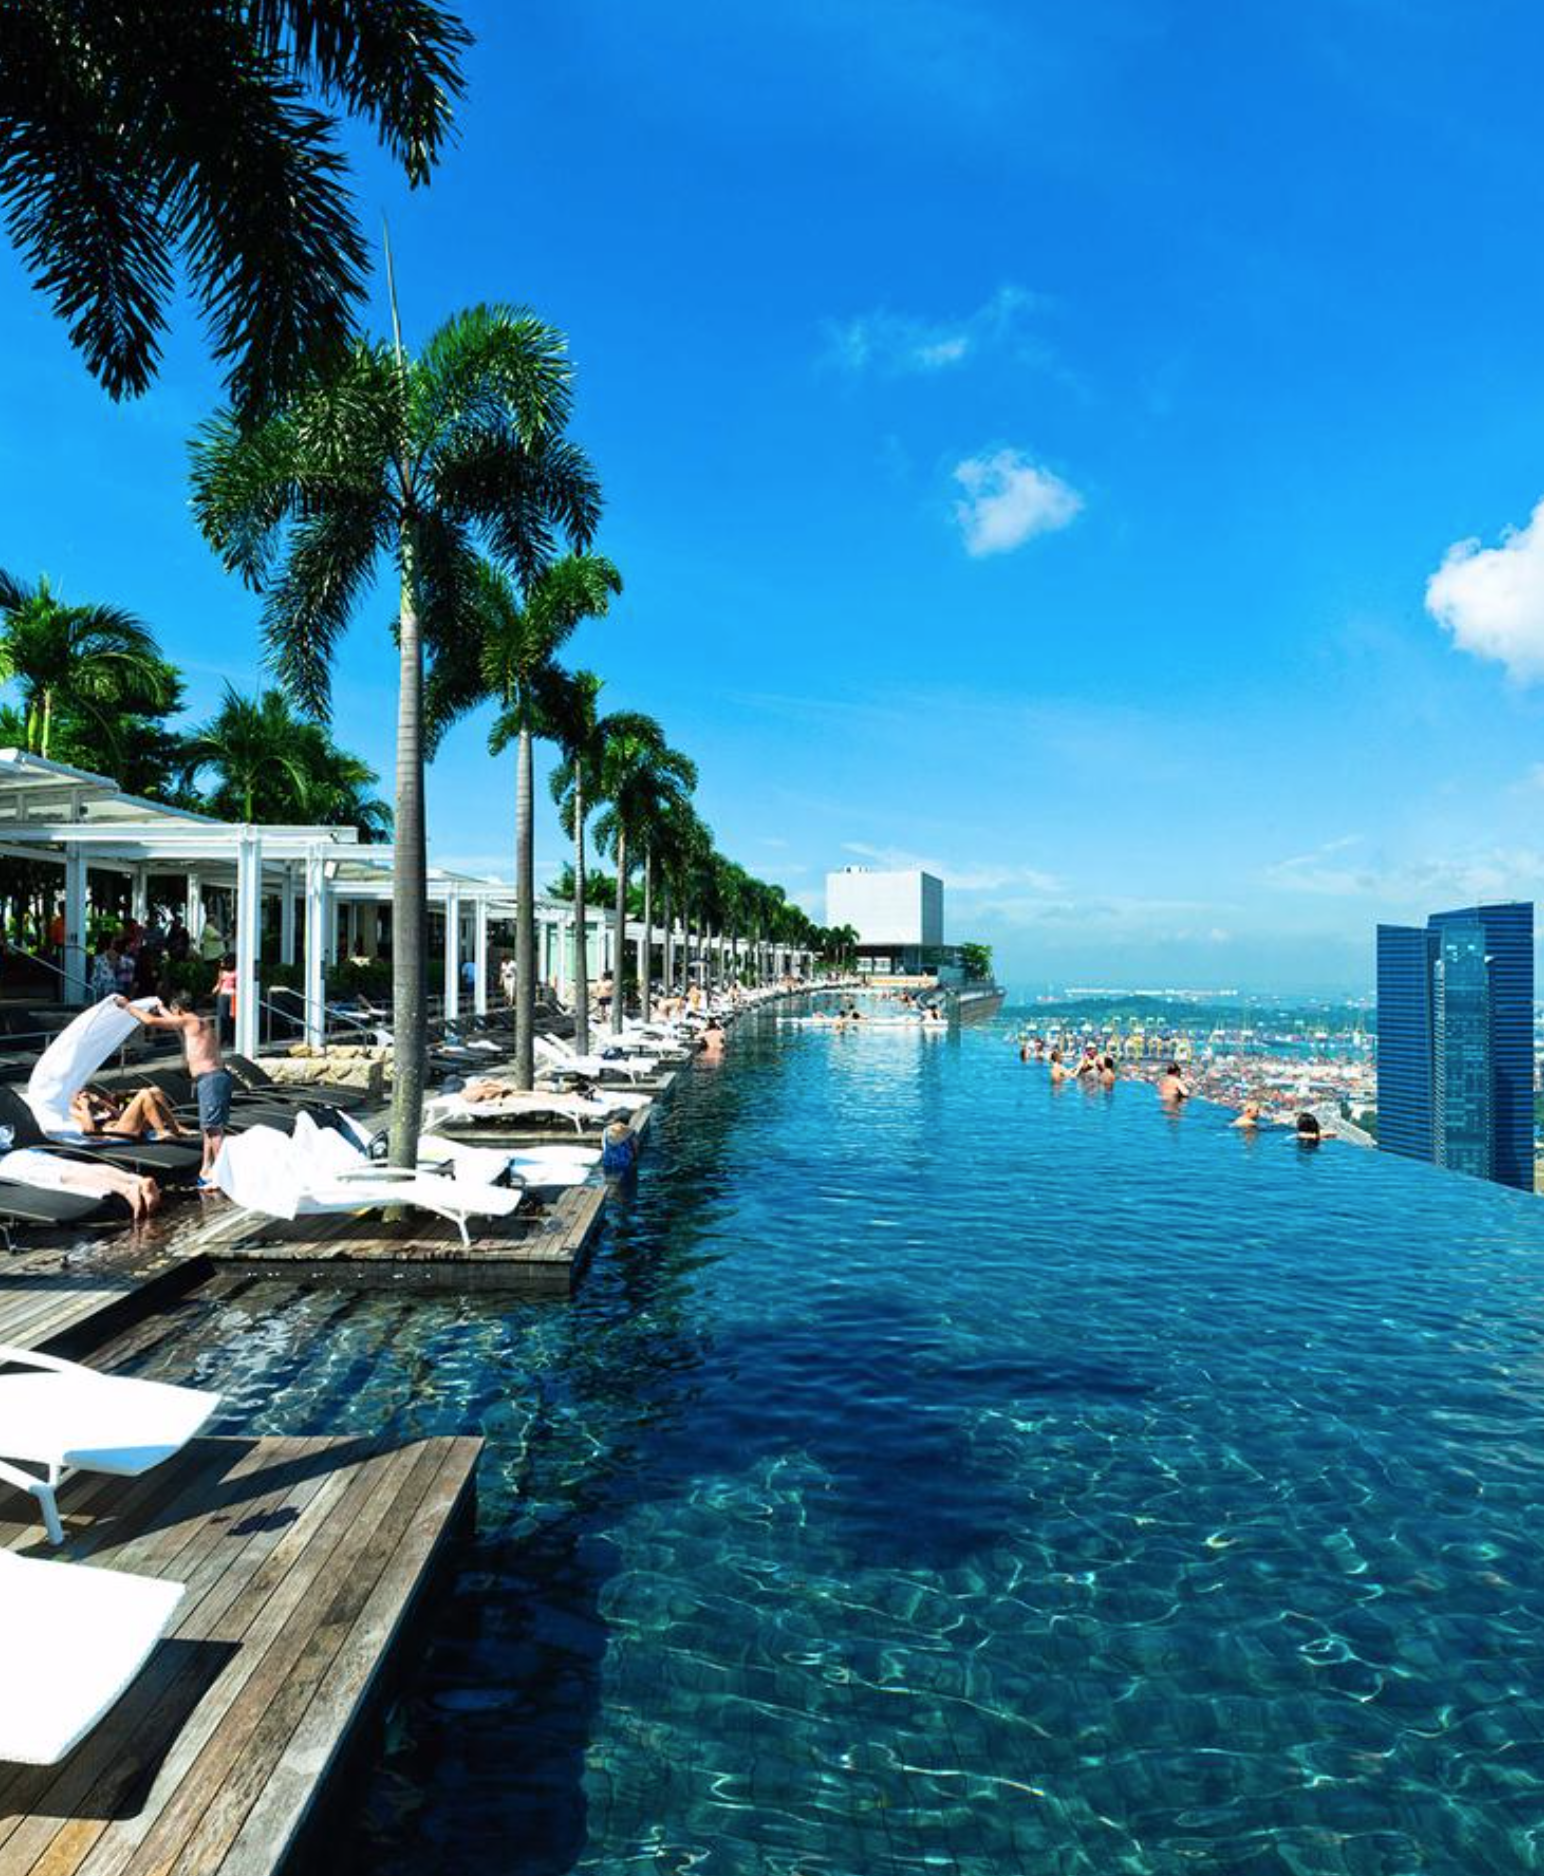 Hotel Marina Bay Sands Singapore The Infinity Pool At The Top Of Hotel Marina Bay Sands Is A Real Show Stopper Cool Swimming Pools Rooftop Pool Cool Pools